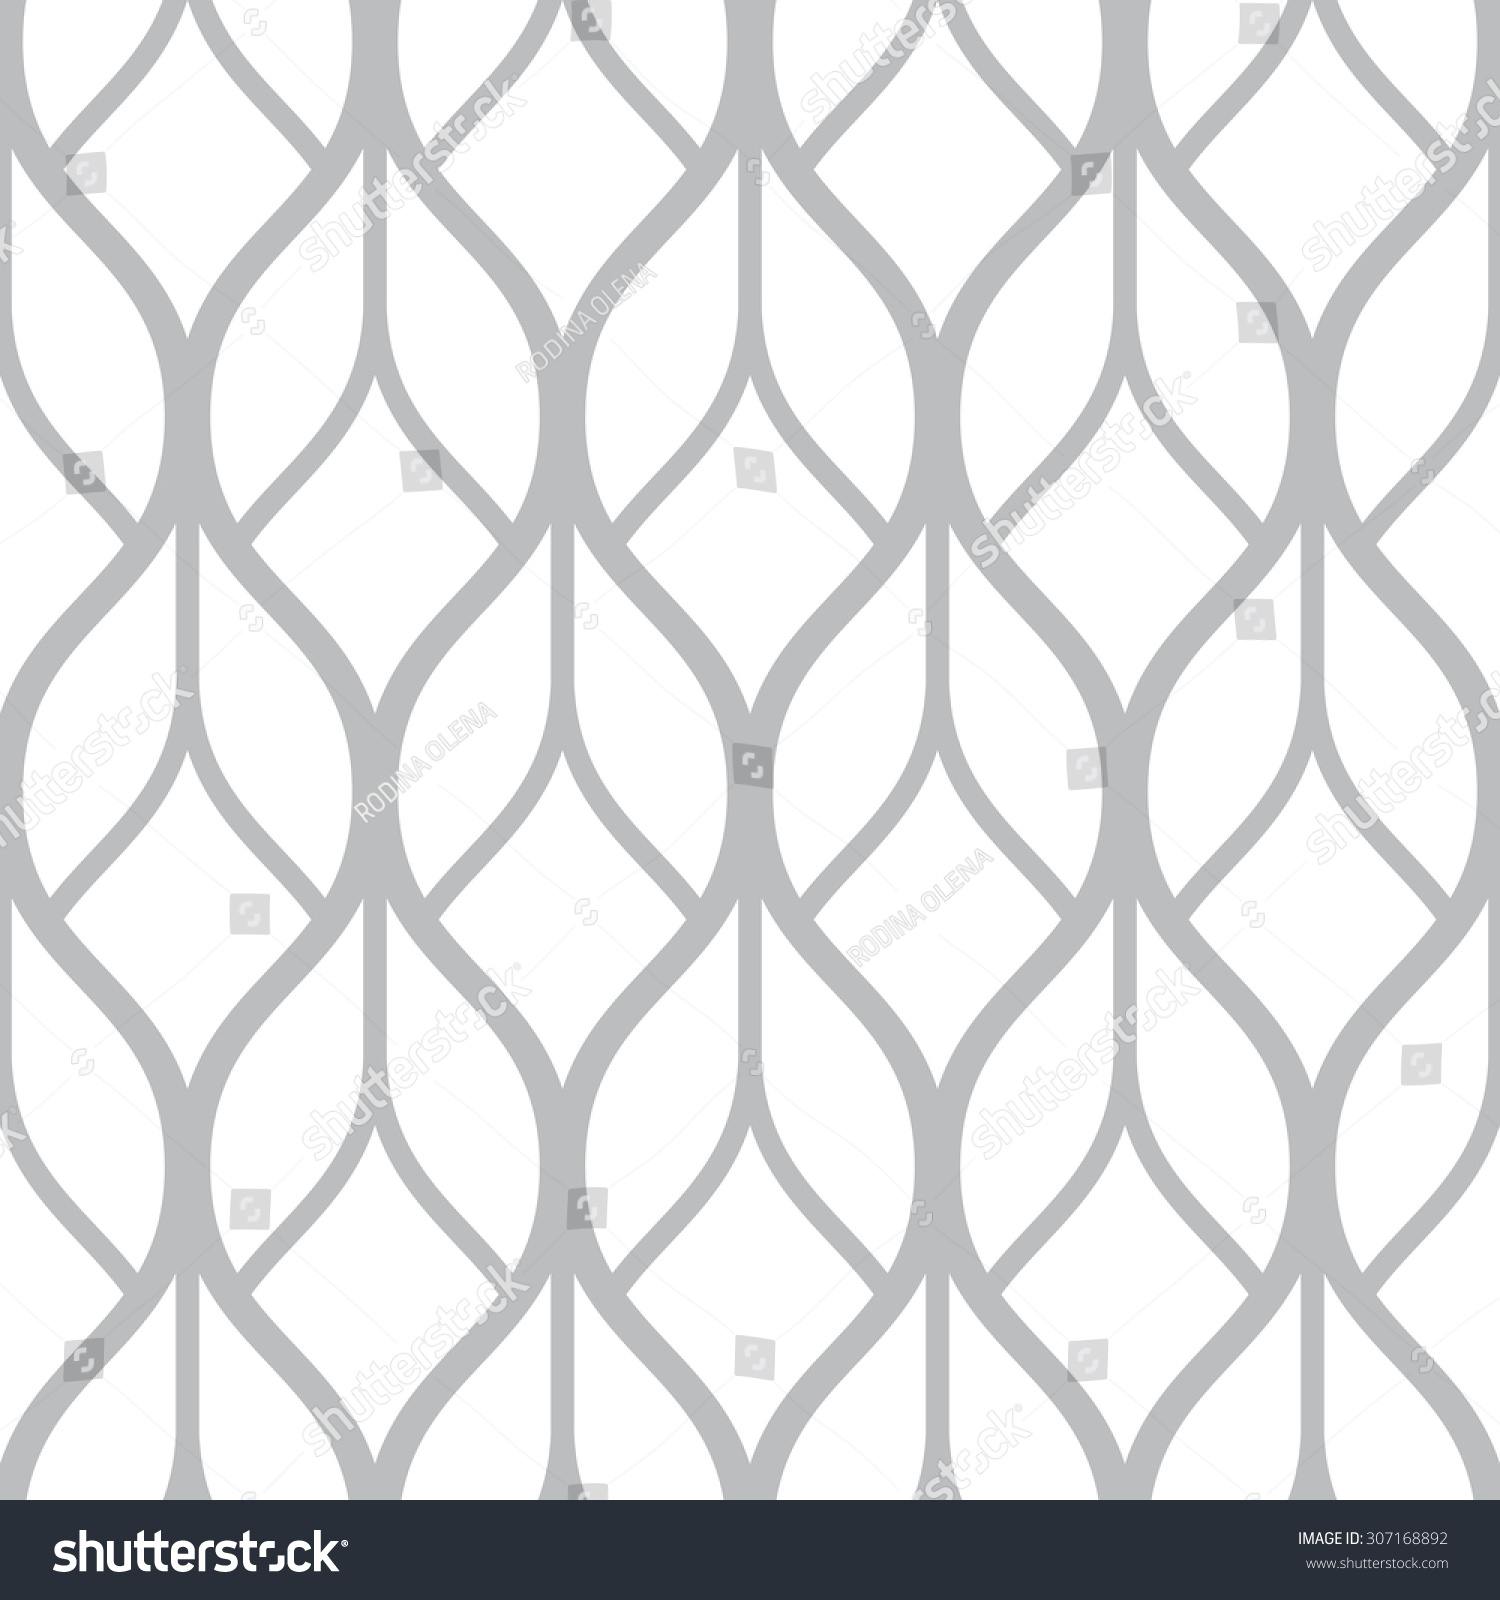 Vector Seamless Monochrome Pattern   Simple Geometric Lines On White Square  Background